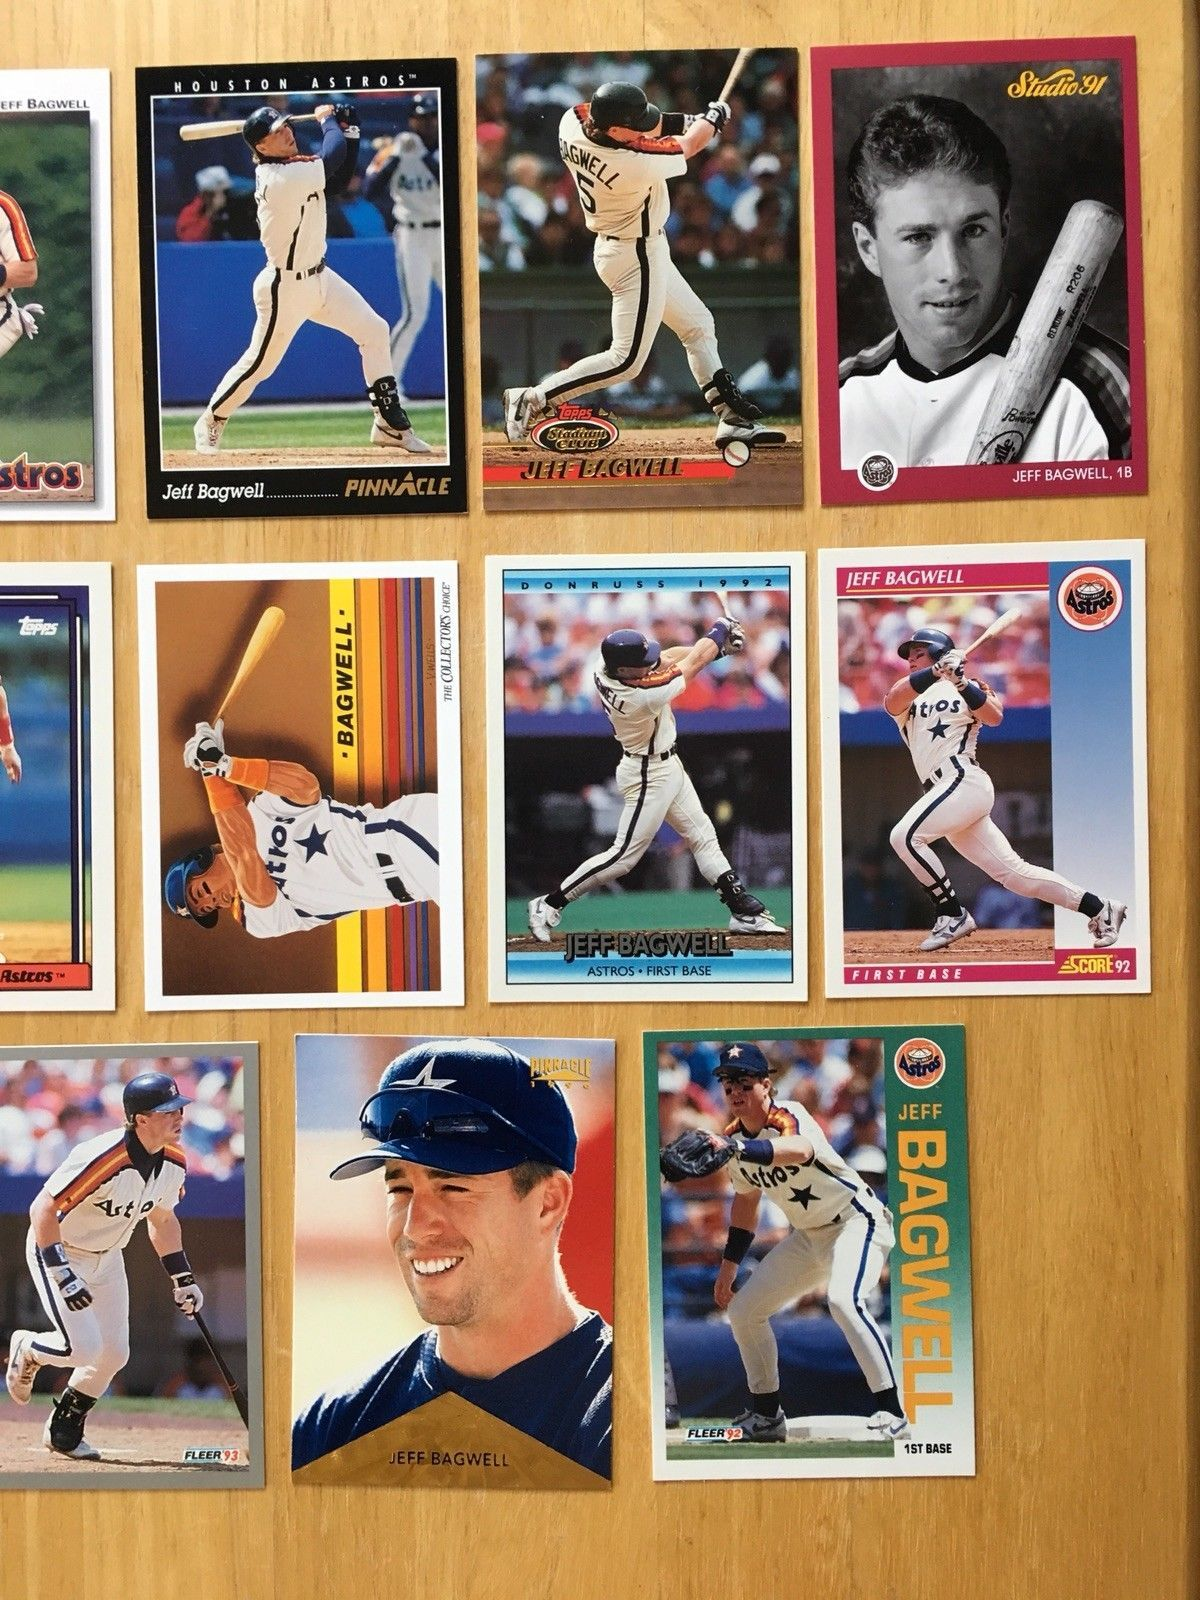 Jeff Bagwell 14 Baseball Card Lot NM/M Condition Houston Astros Topps image 3